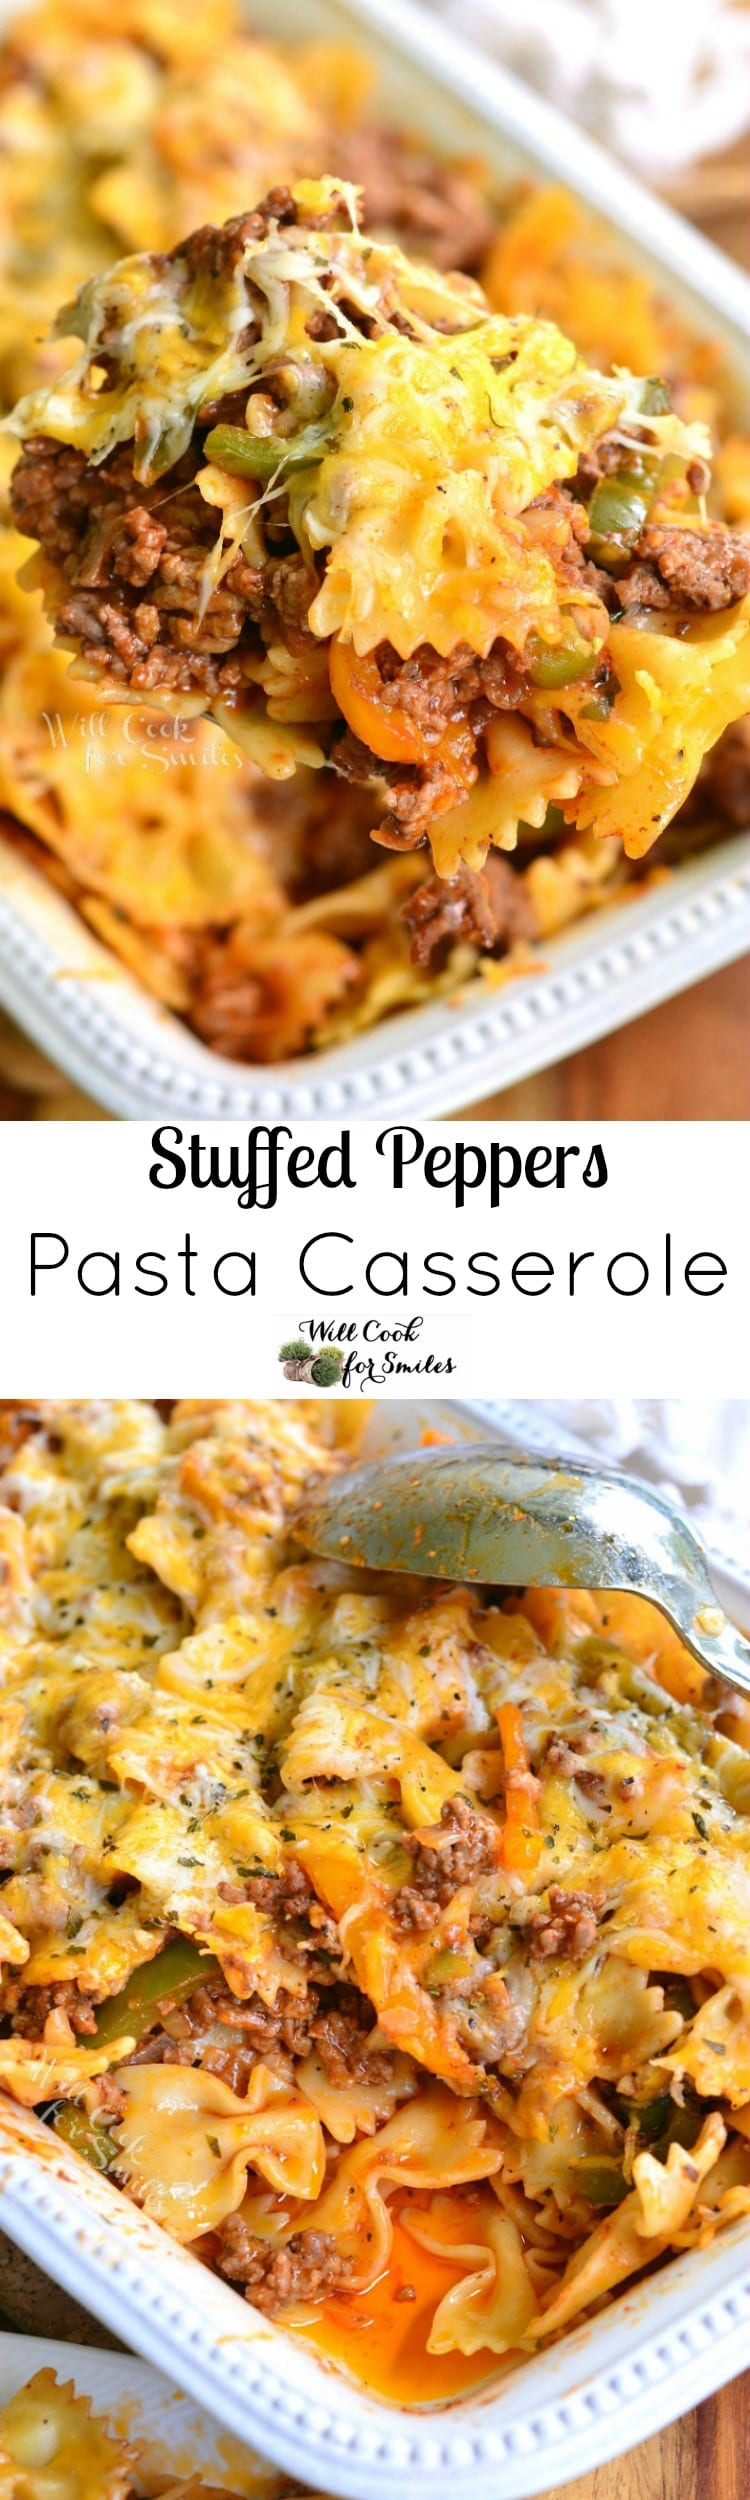 Stuffed Peppers Pasta Casserole. Delicious, simple, and comforting...what else could one want in a great pasta dish?!